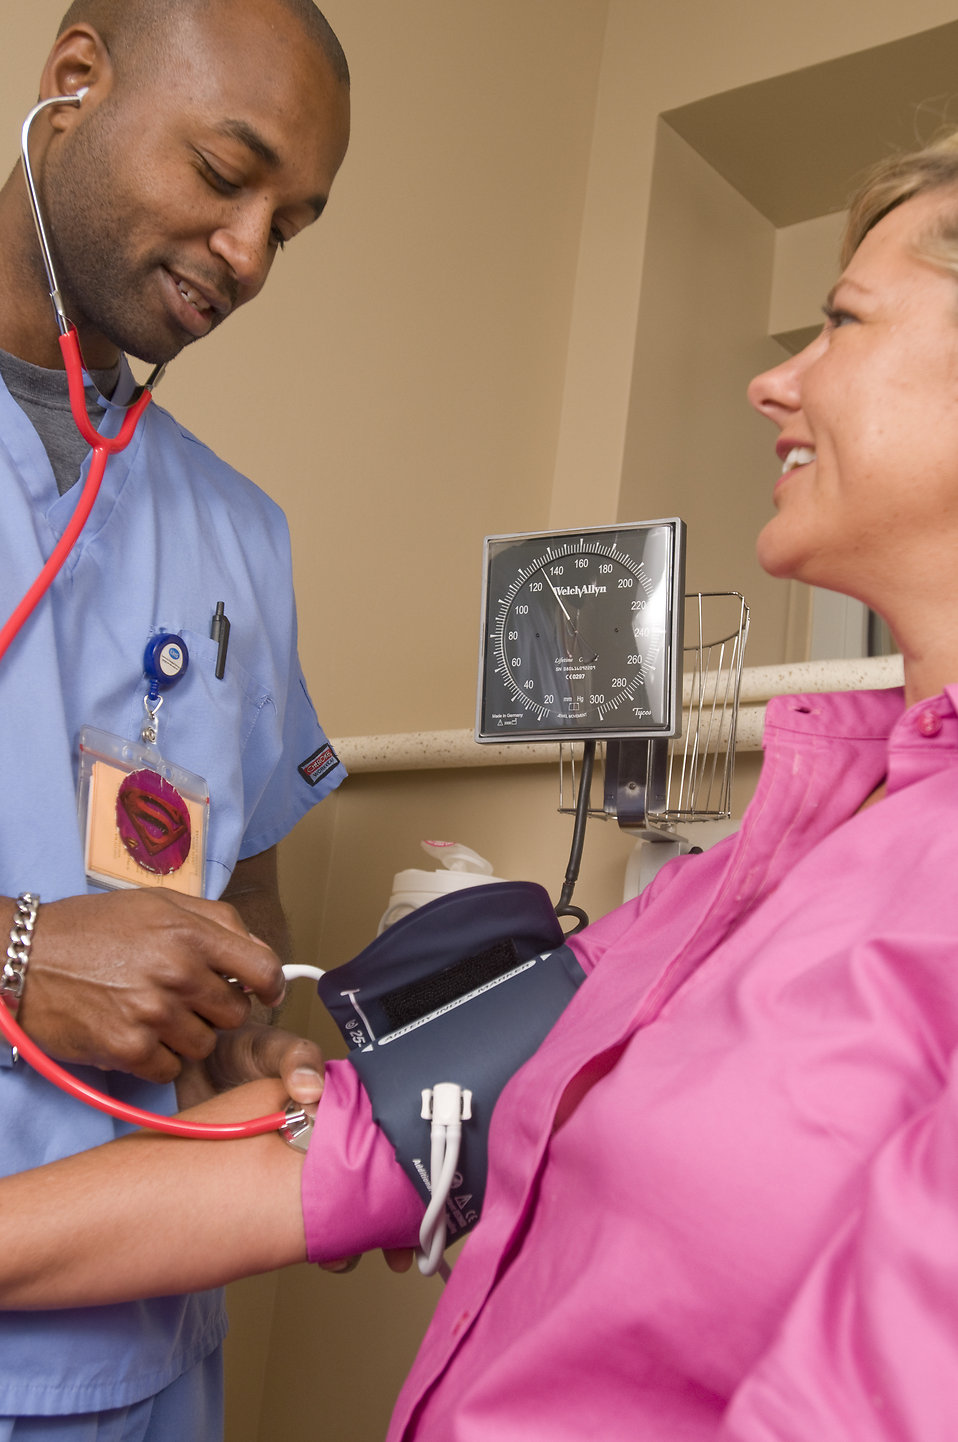 A male nurse taking the blood pressure of a woman : Free Stock Photo